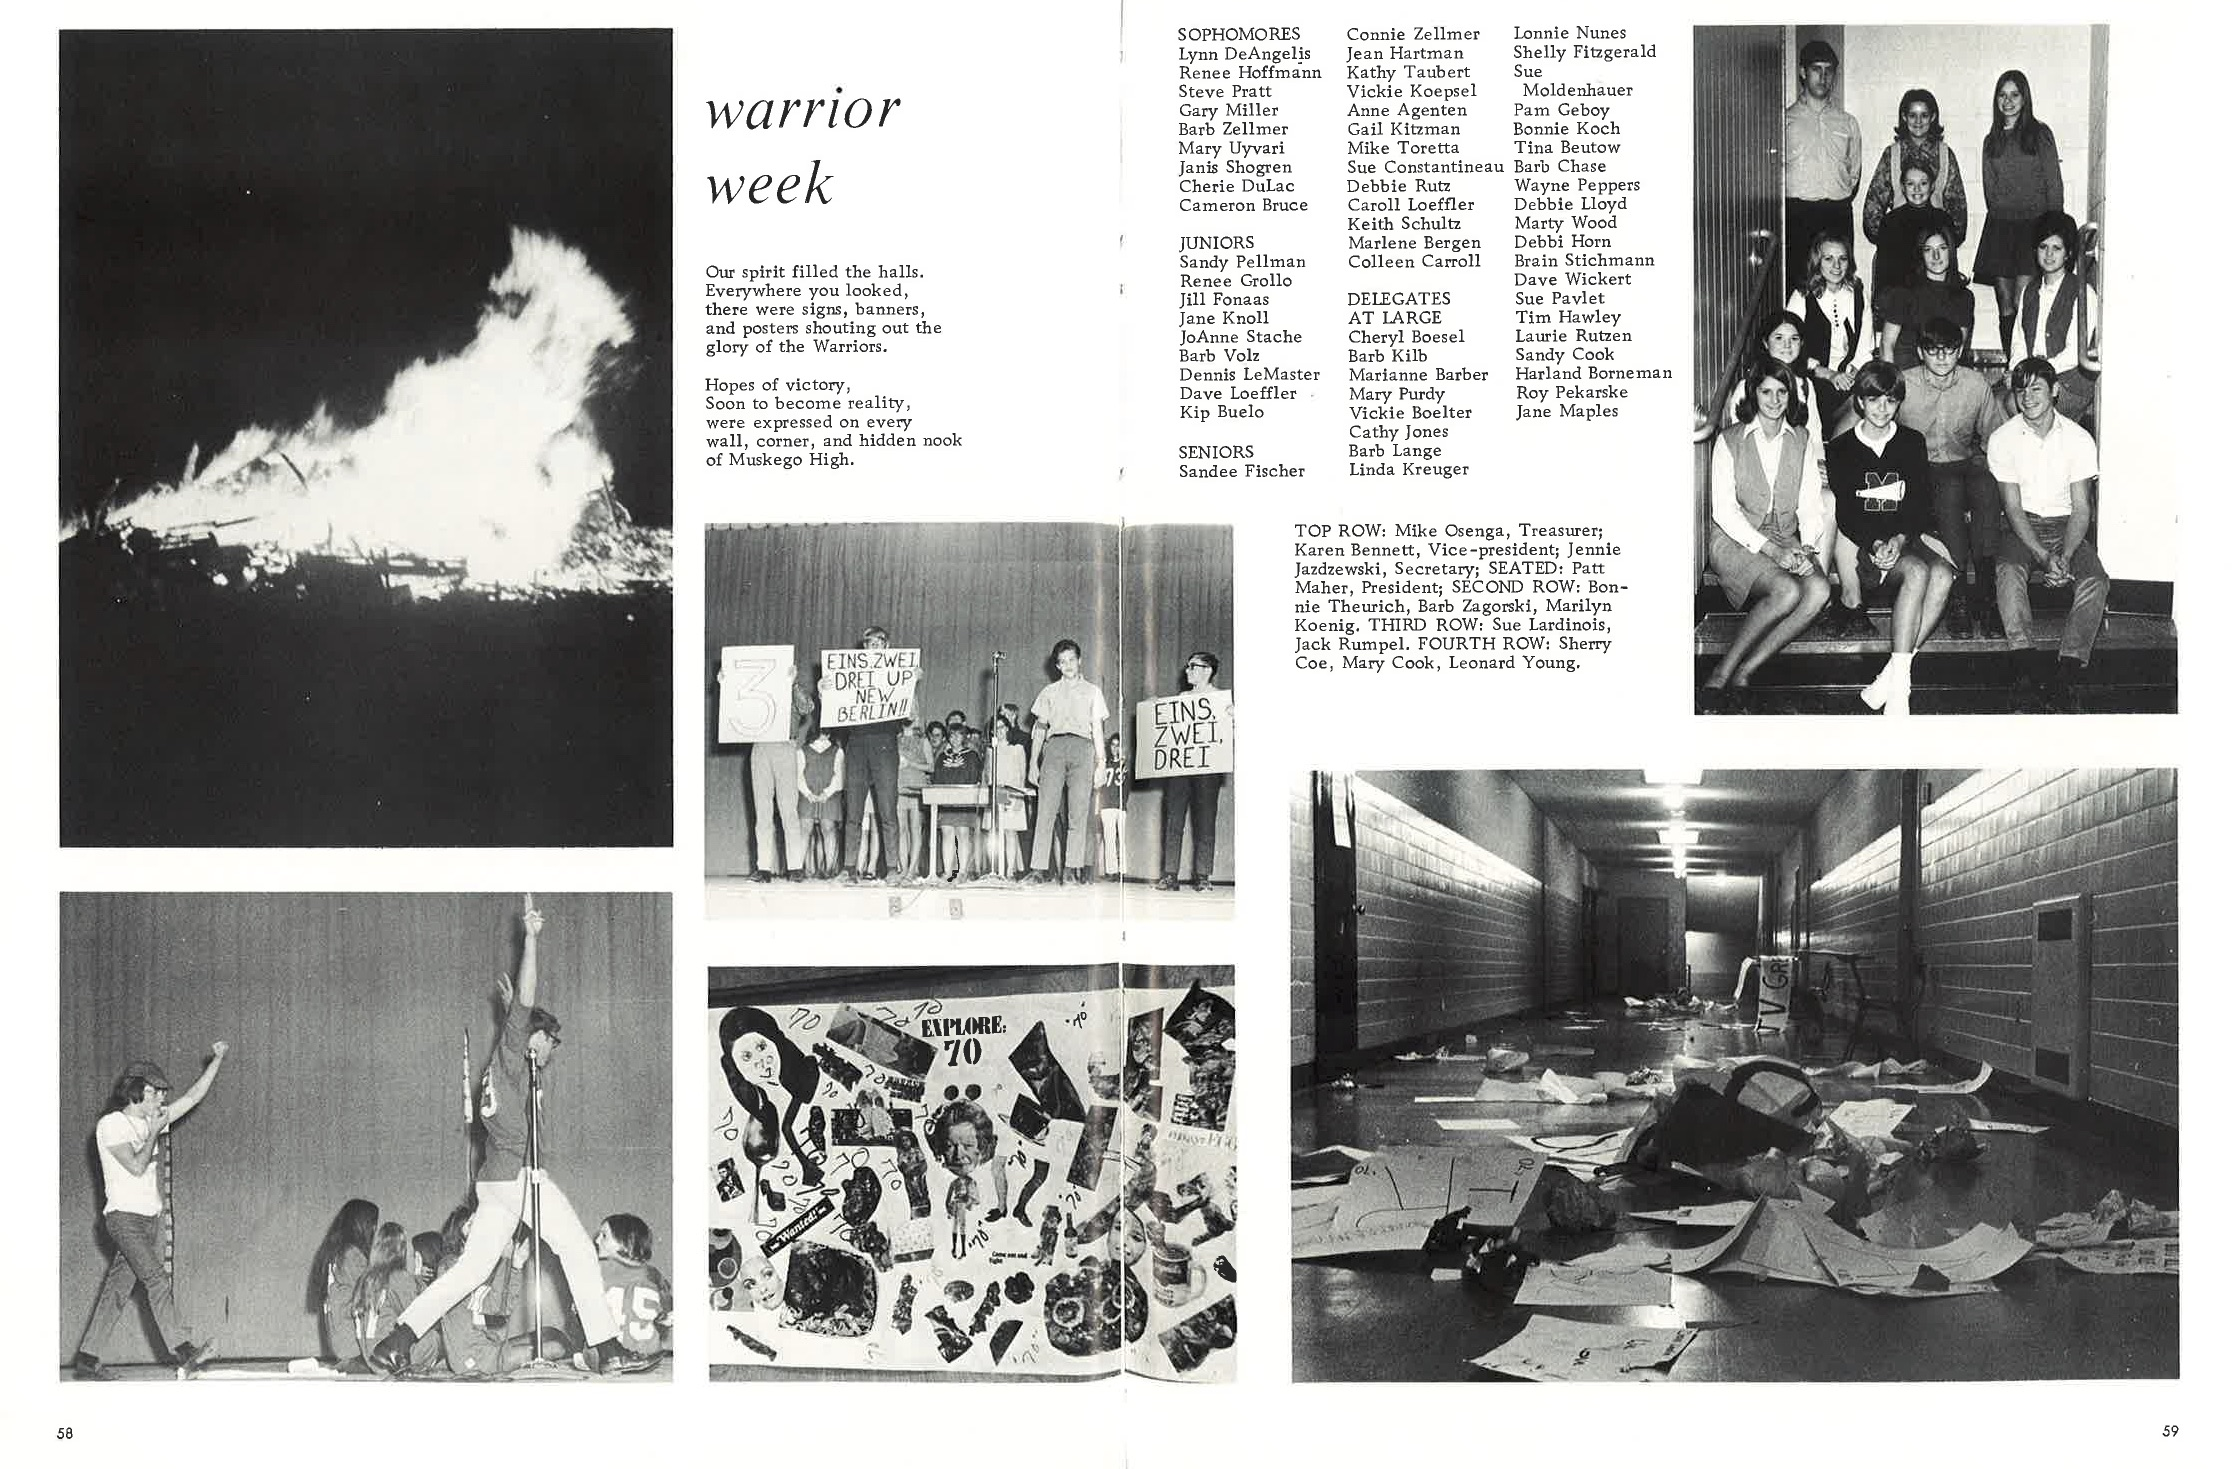 1970_Yearbook_58-59.jpg